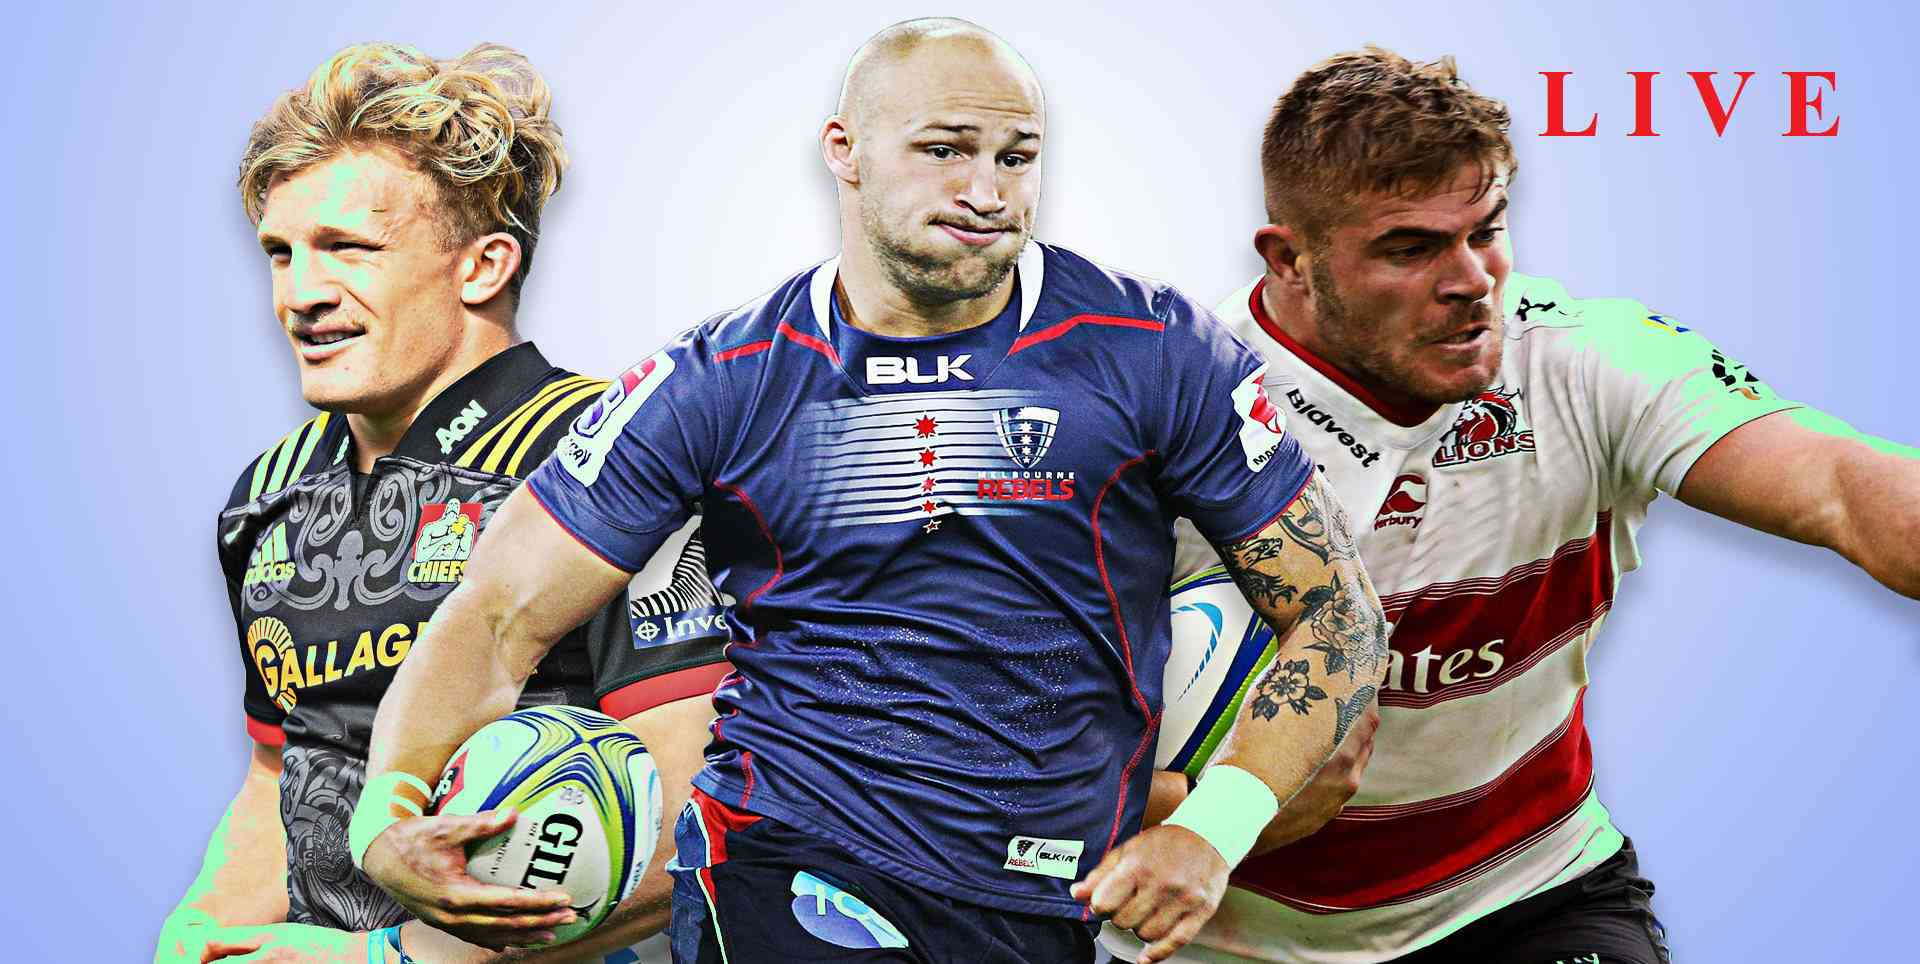 gloucester-rugby-vs-la-rochelle-streaming-live